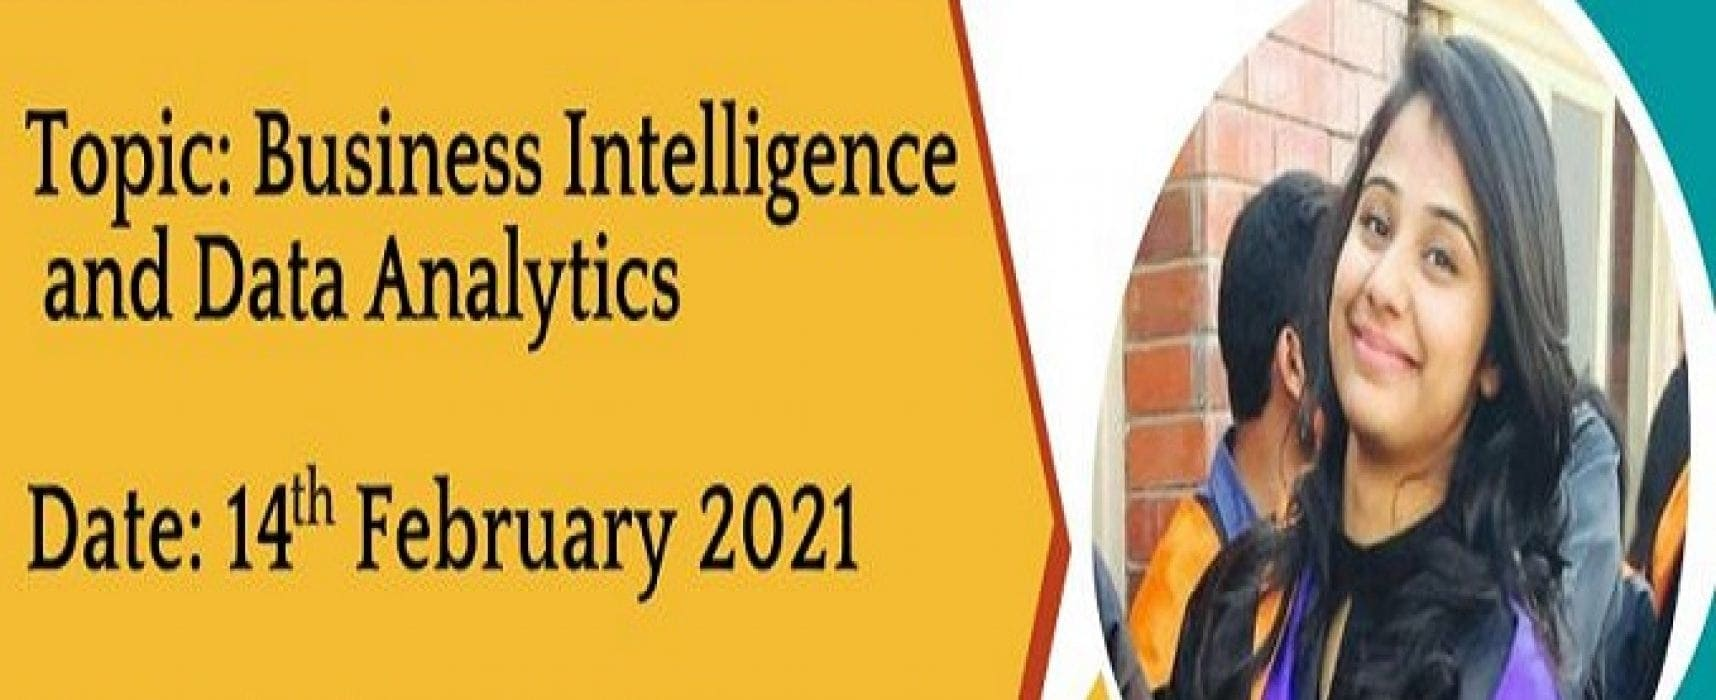 Business Intelligence and Data Analytics